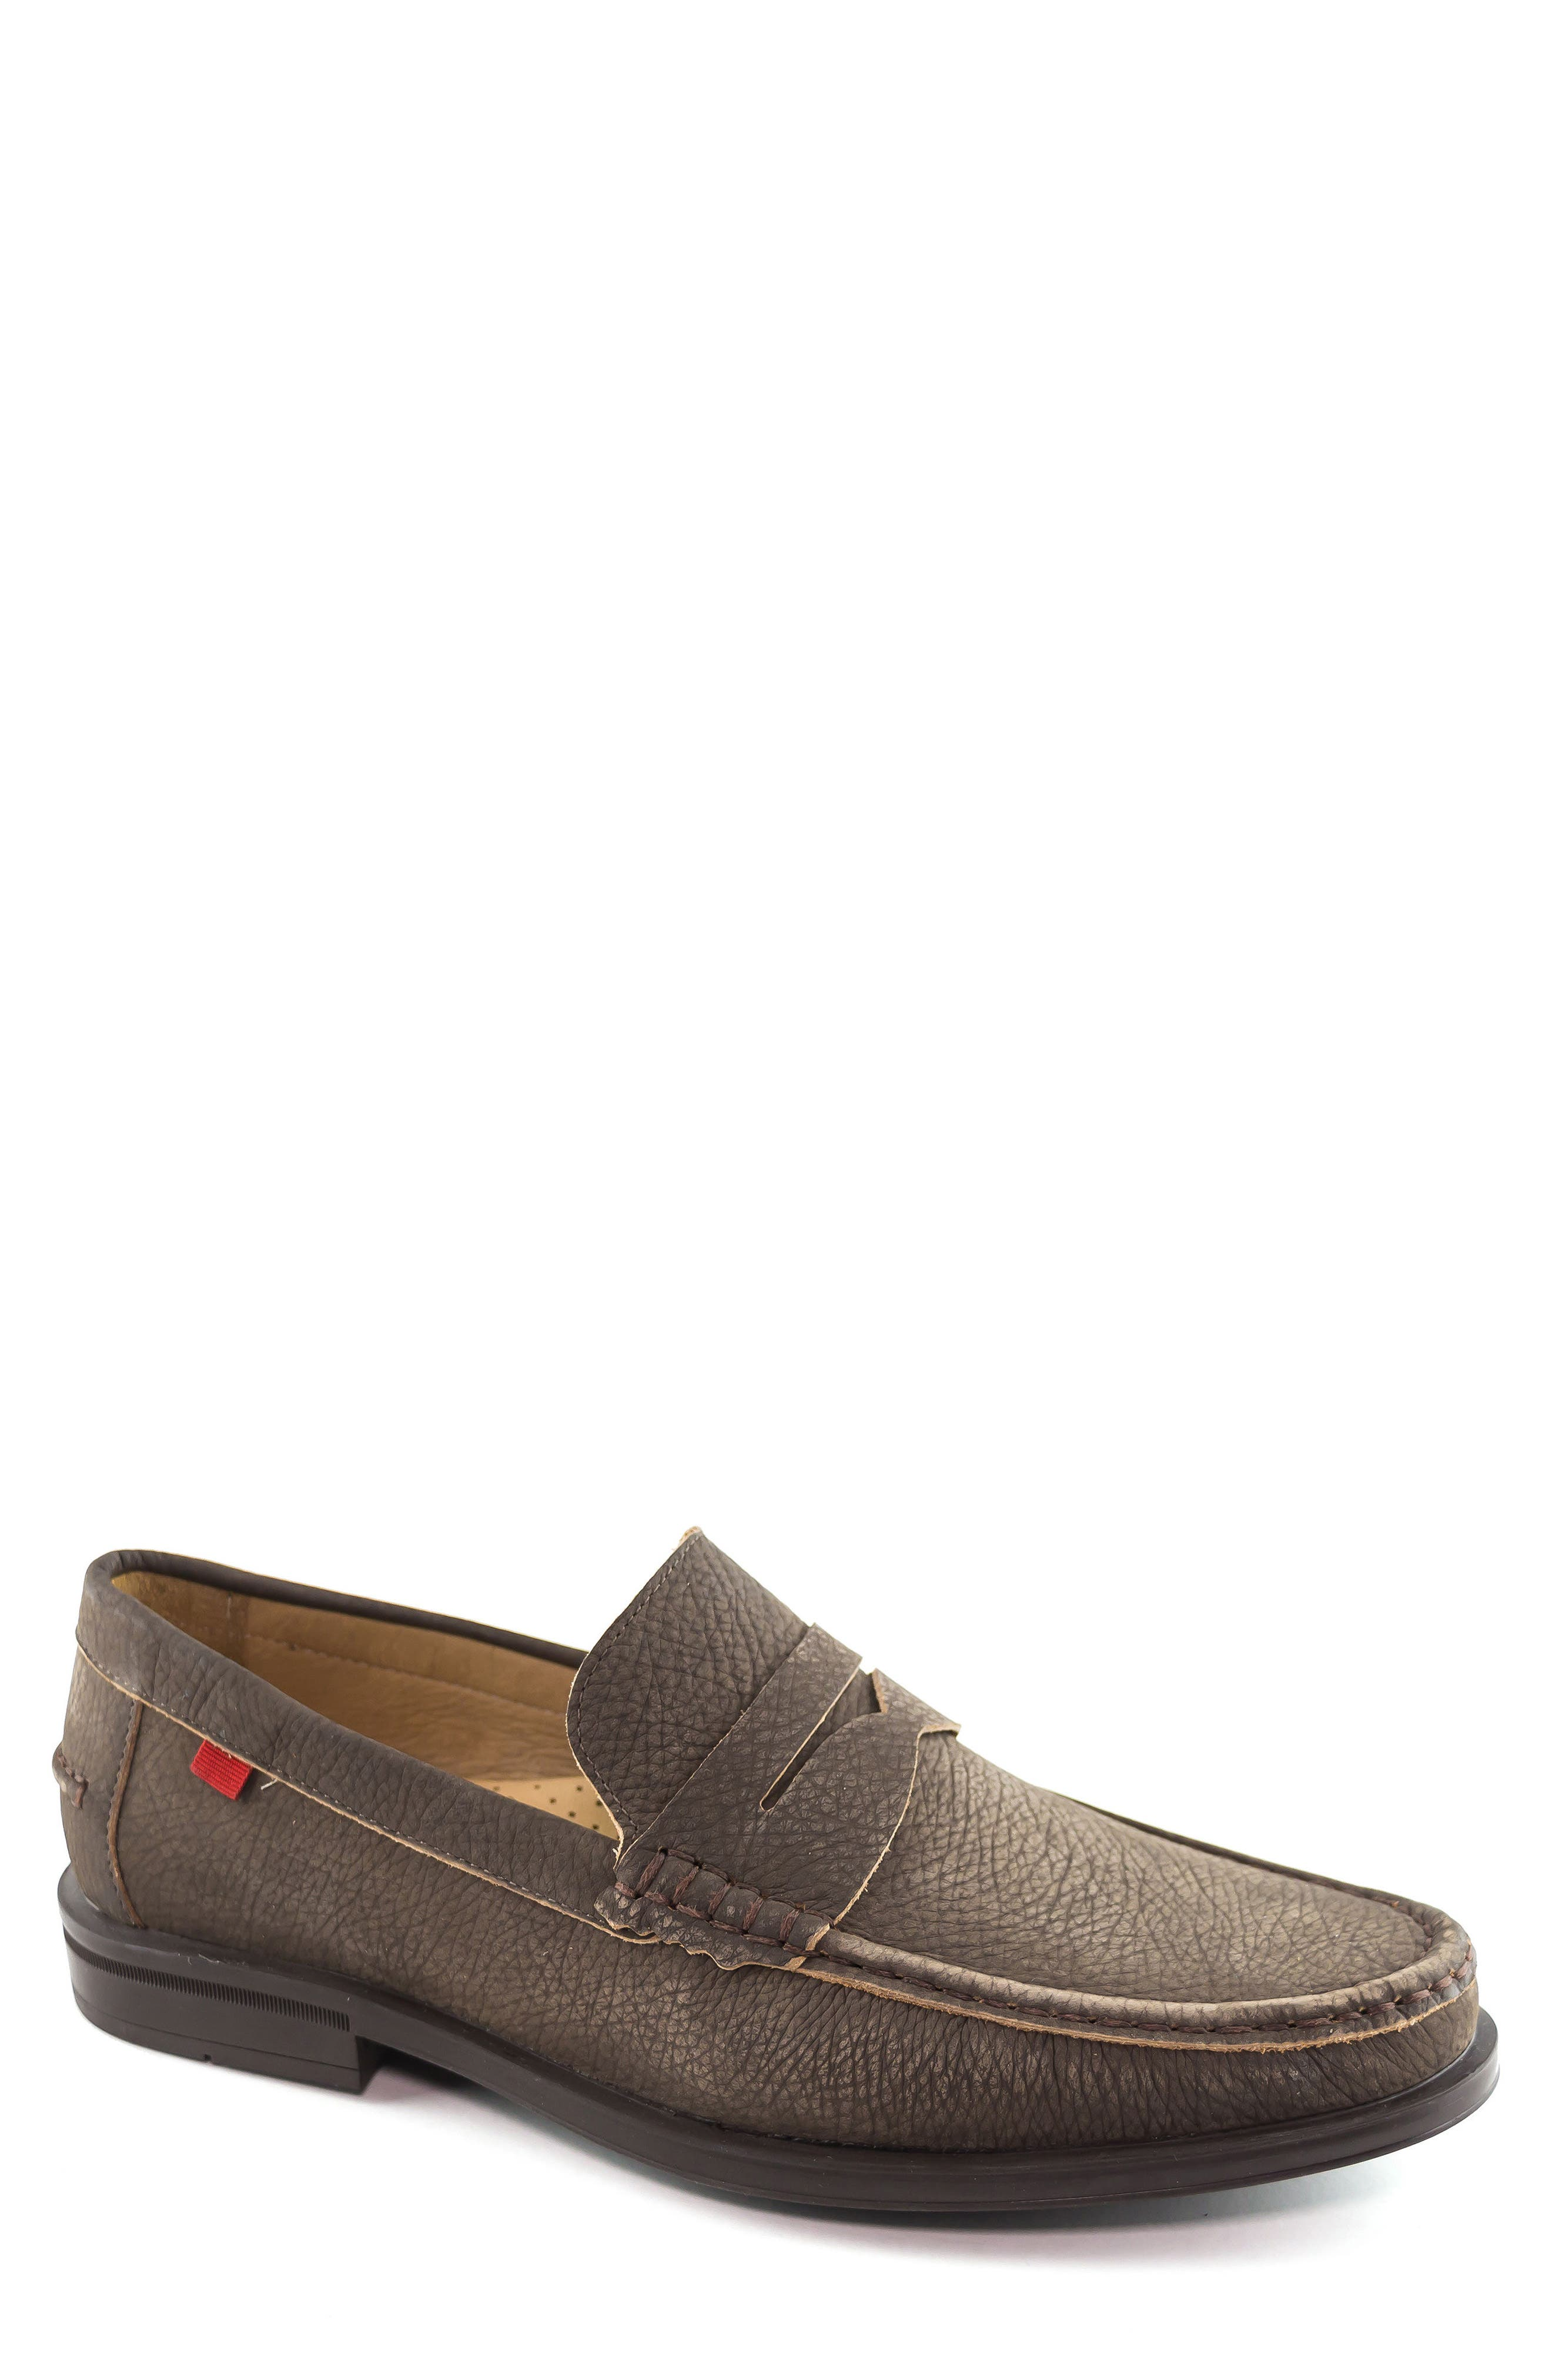 Cortland Penny Loafer,                         Main,                         color, CAFE